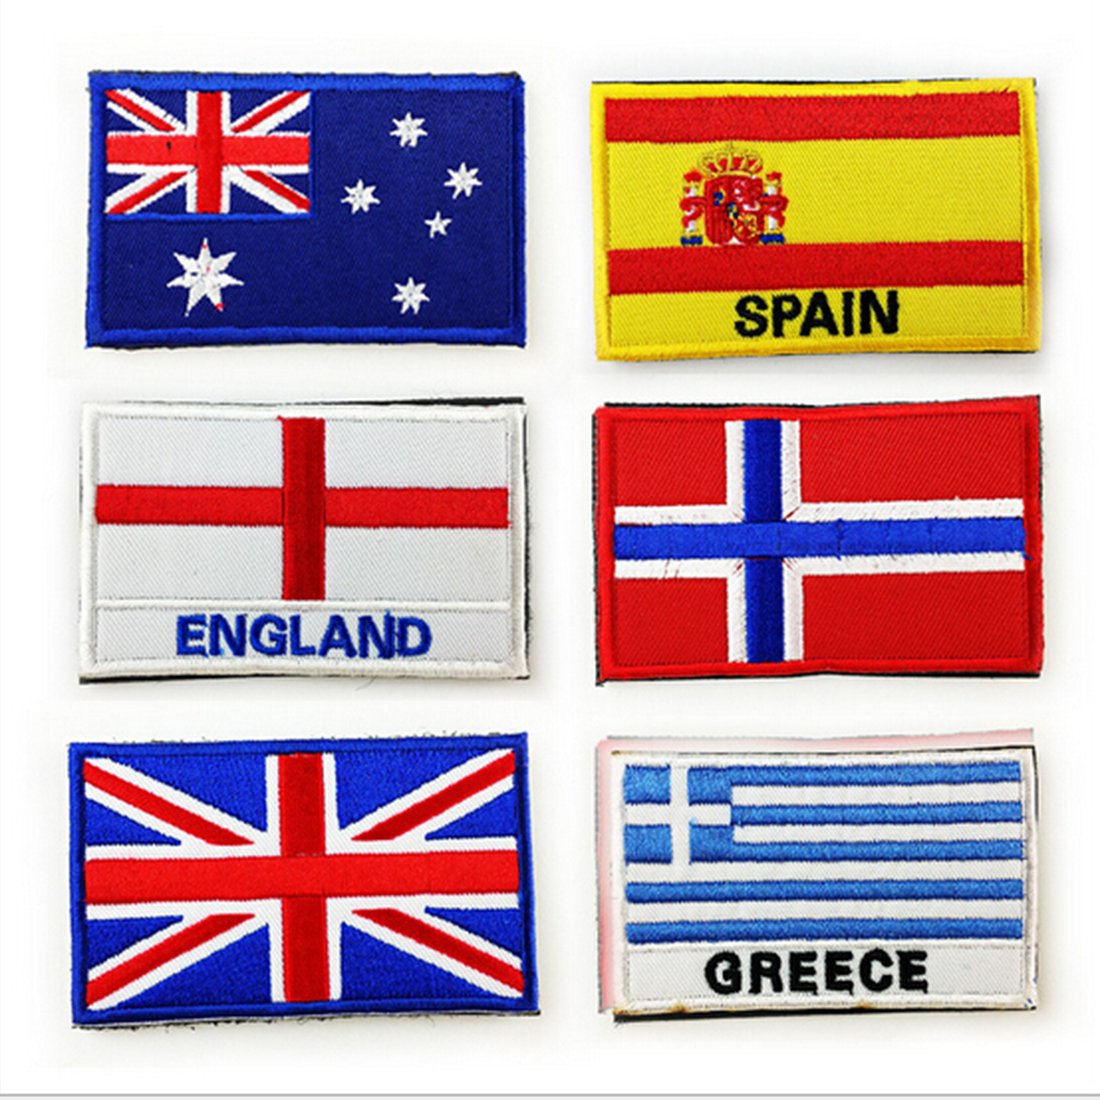 Aspiring Canada Flag Patch 3d Pvc Backpack Patch Bag Jacket Armband Badge Sticker Army Badge Military Fans Patches Patches Apparel Sewing & Fabric